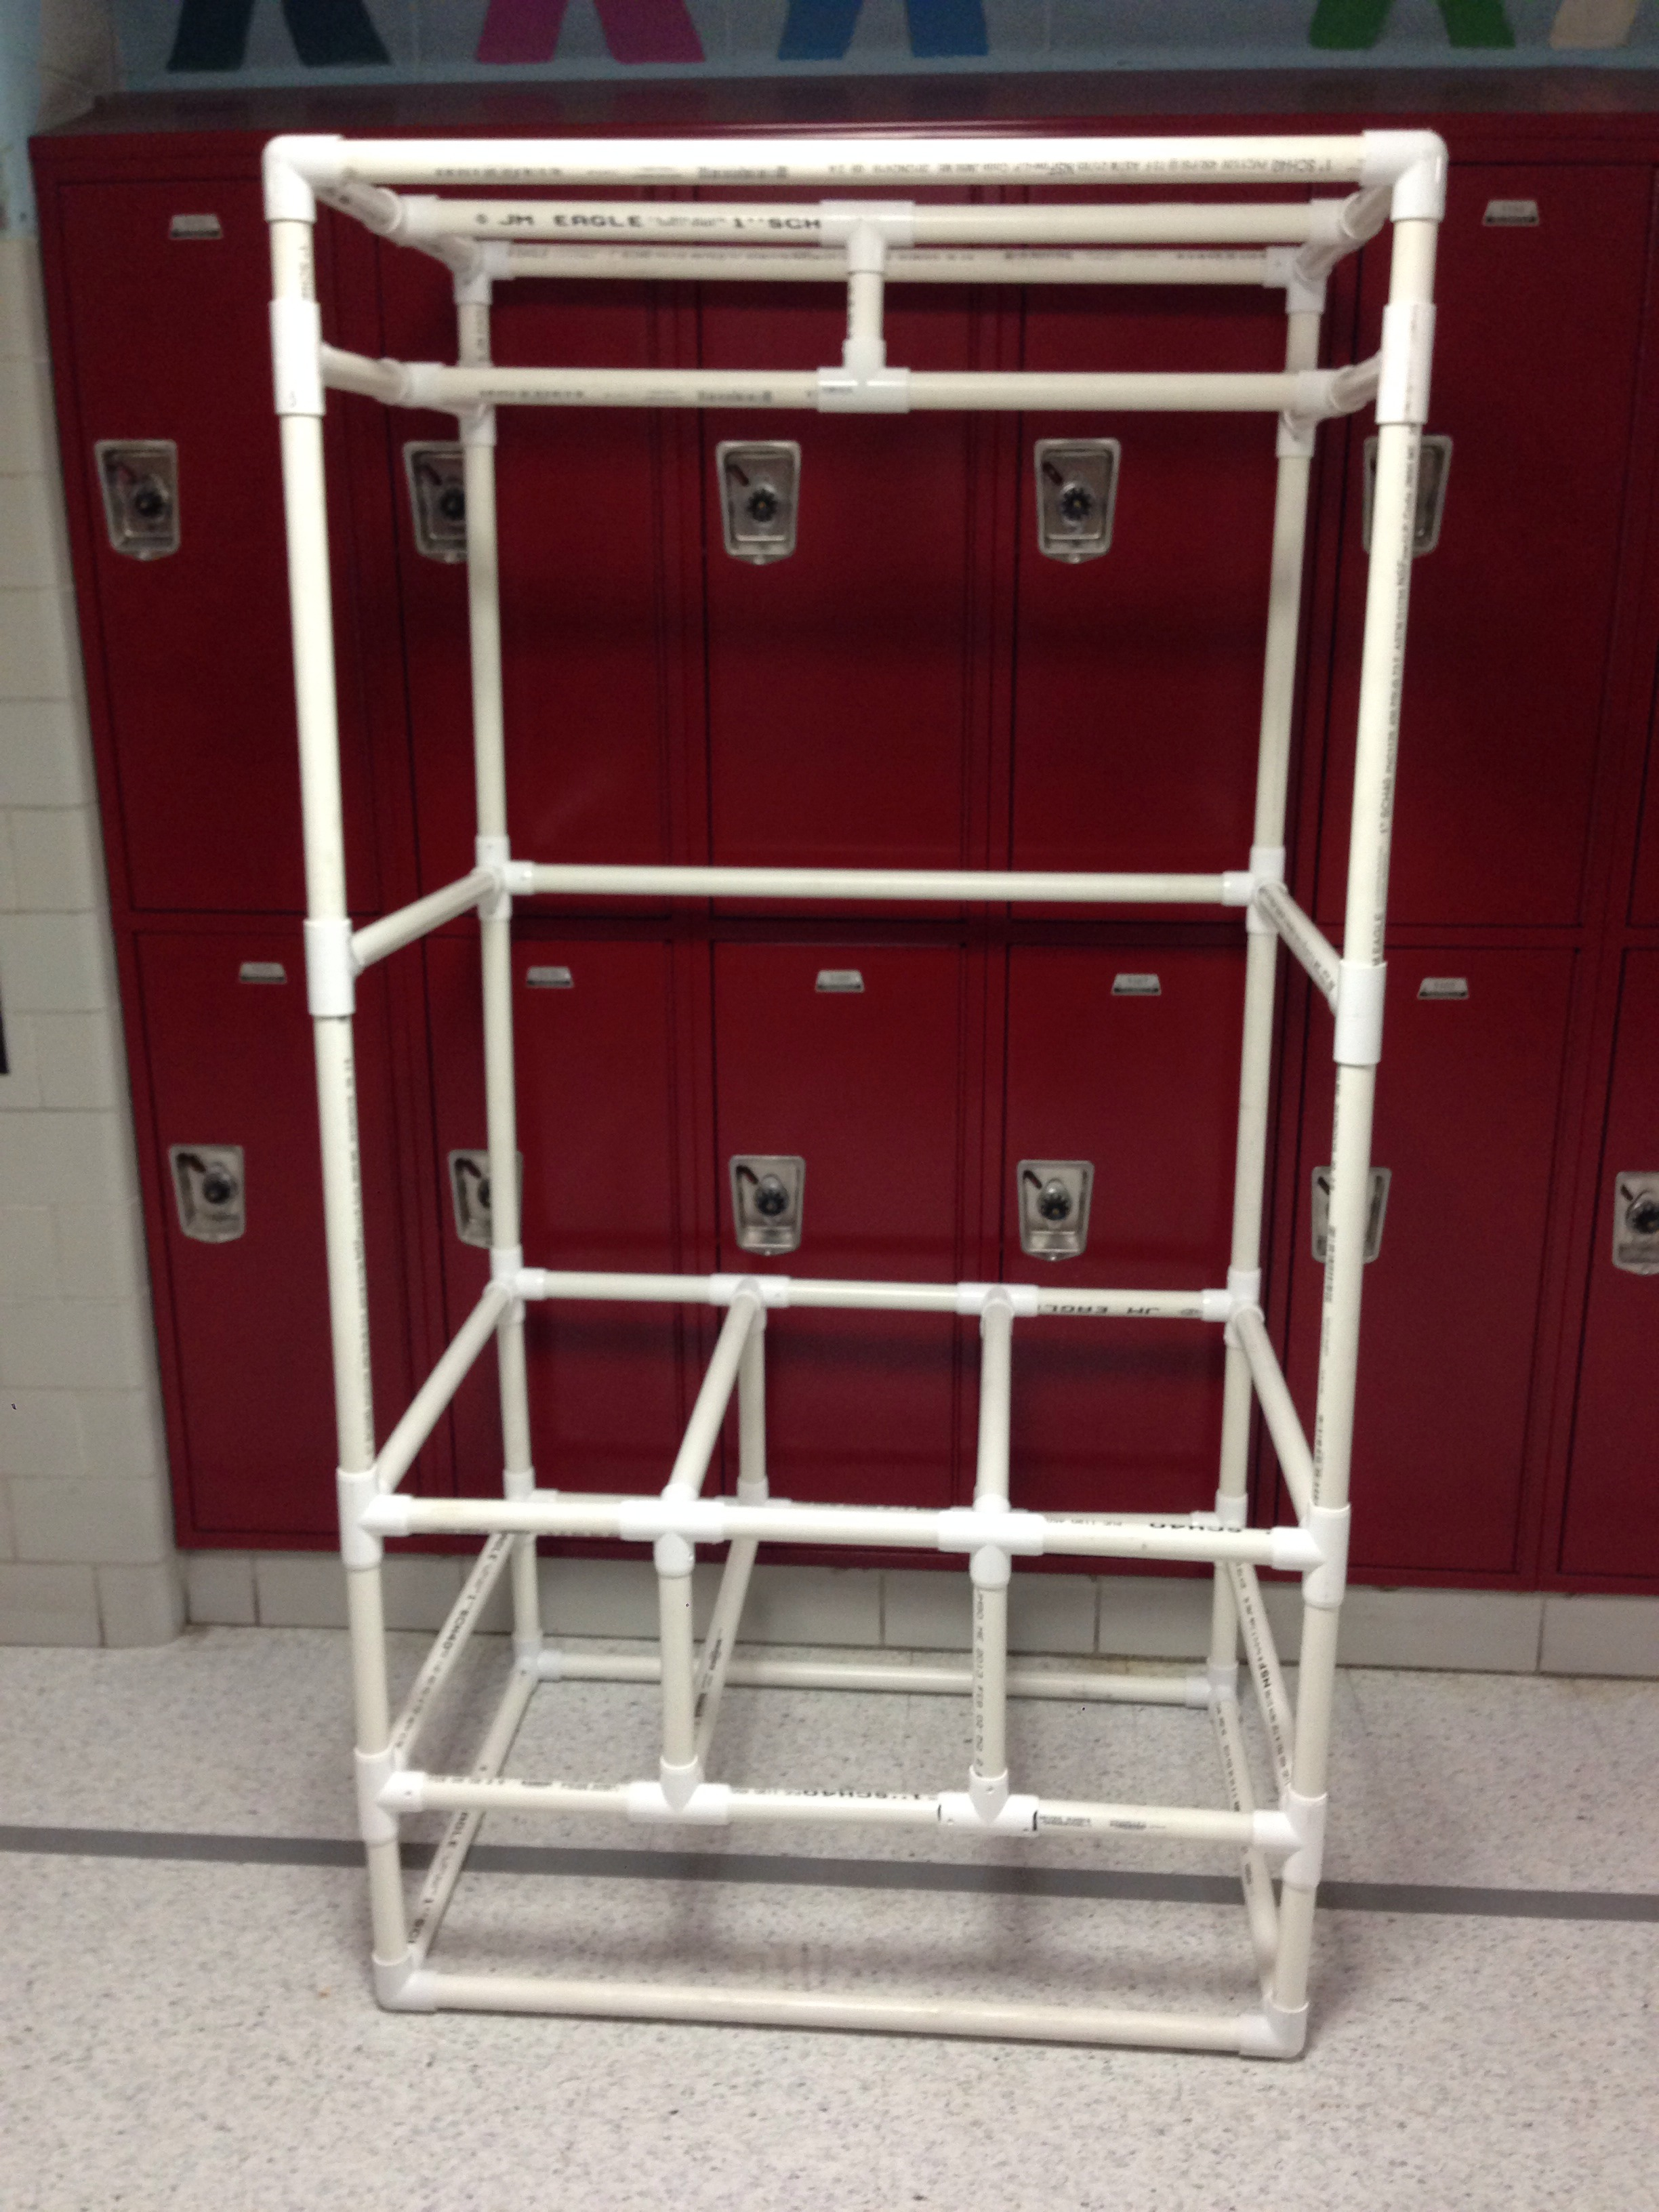 How To Make A Closet Organizer Out Of Pvc 8 Steps With